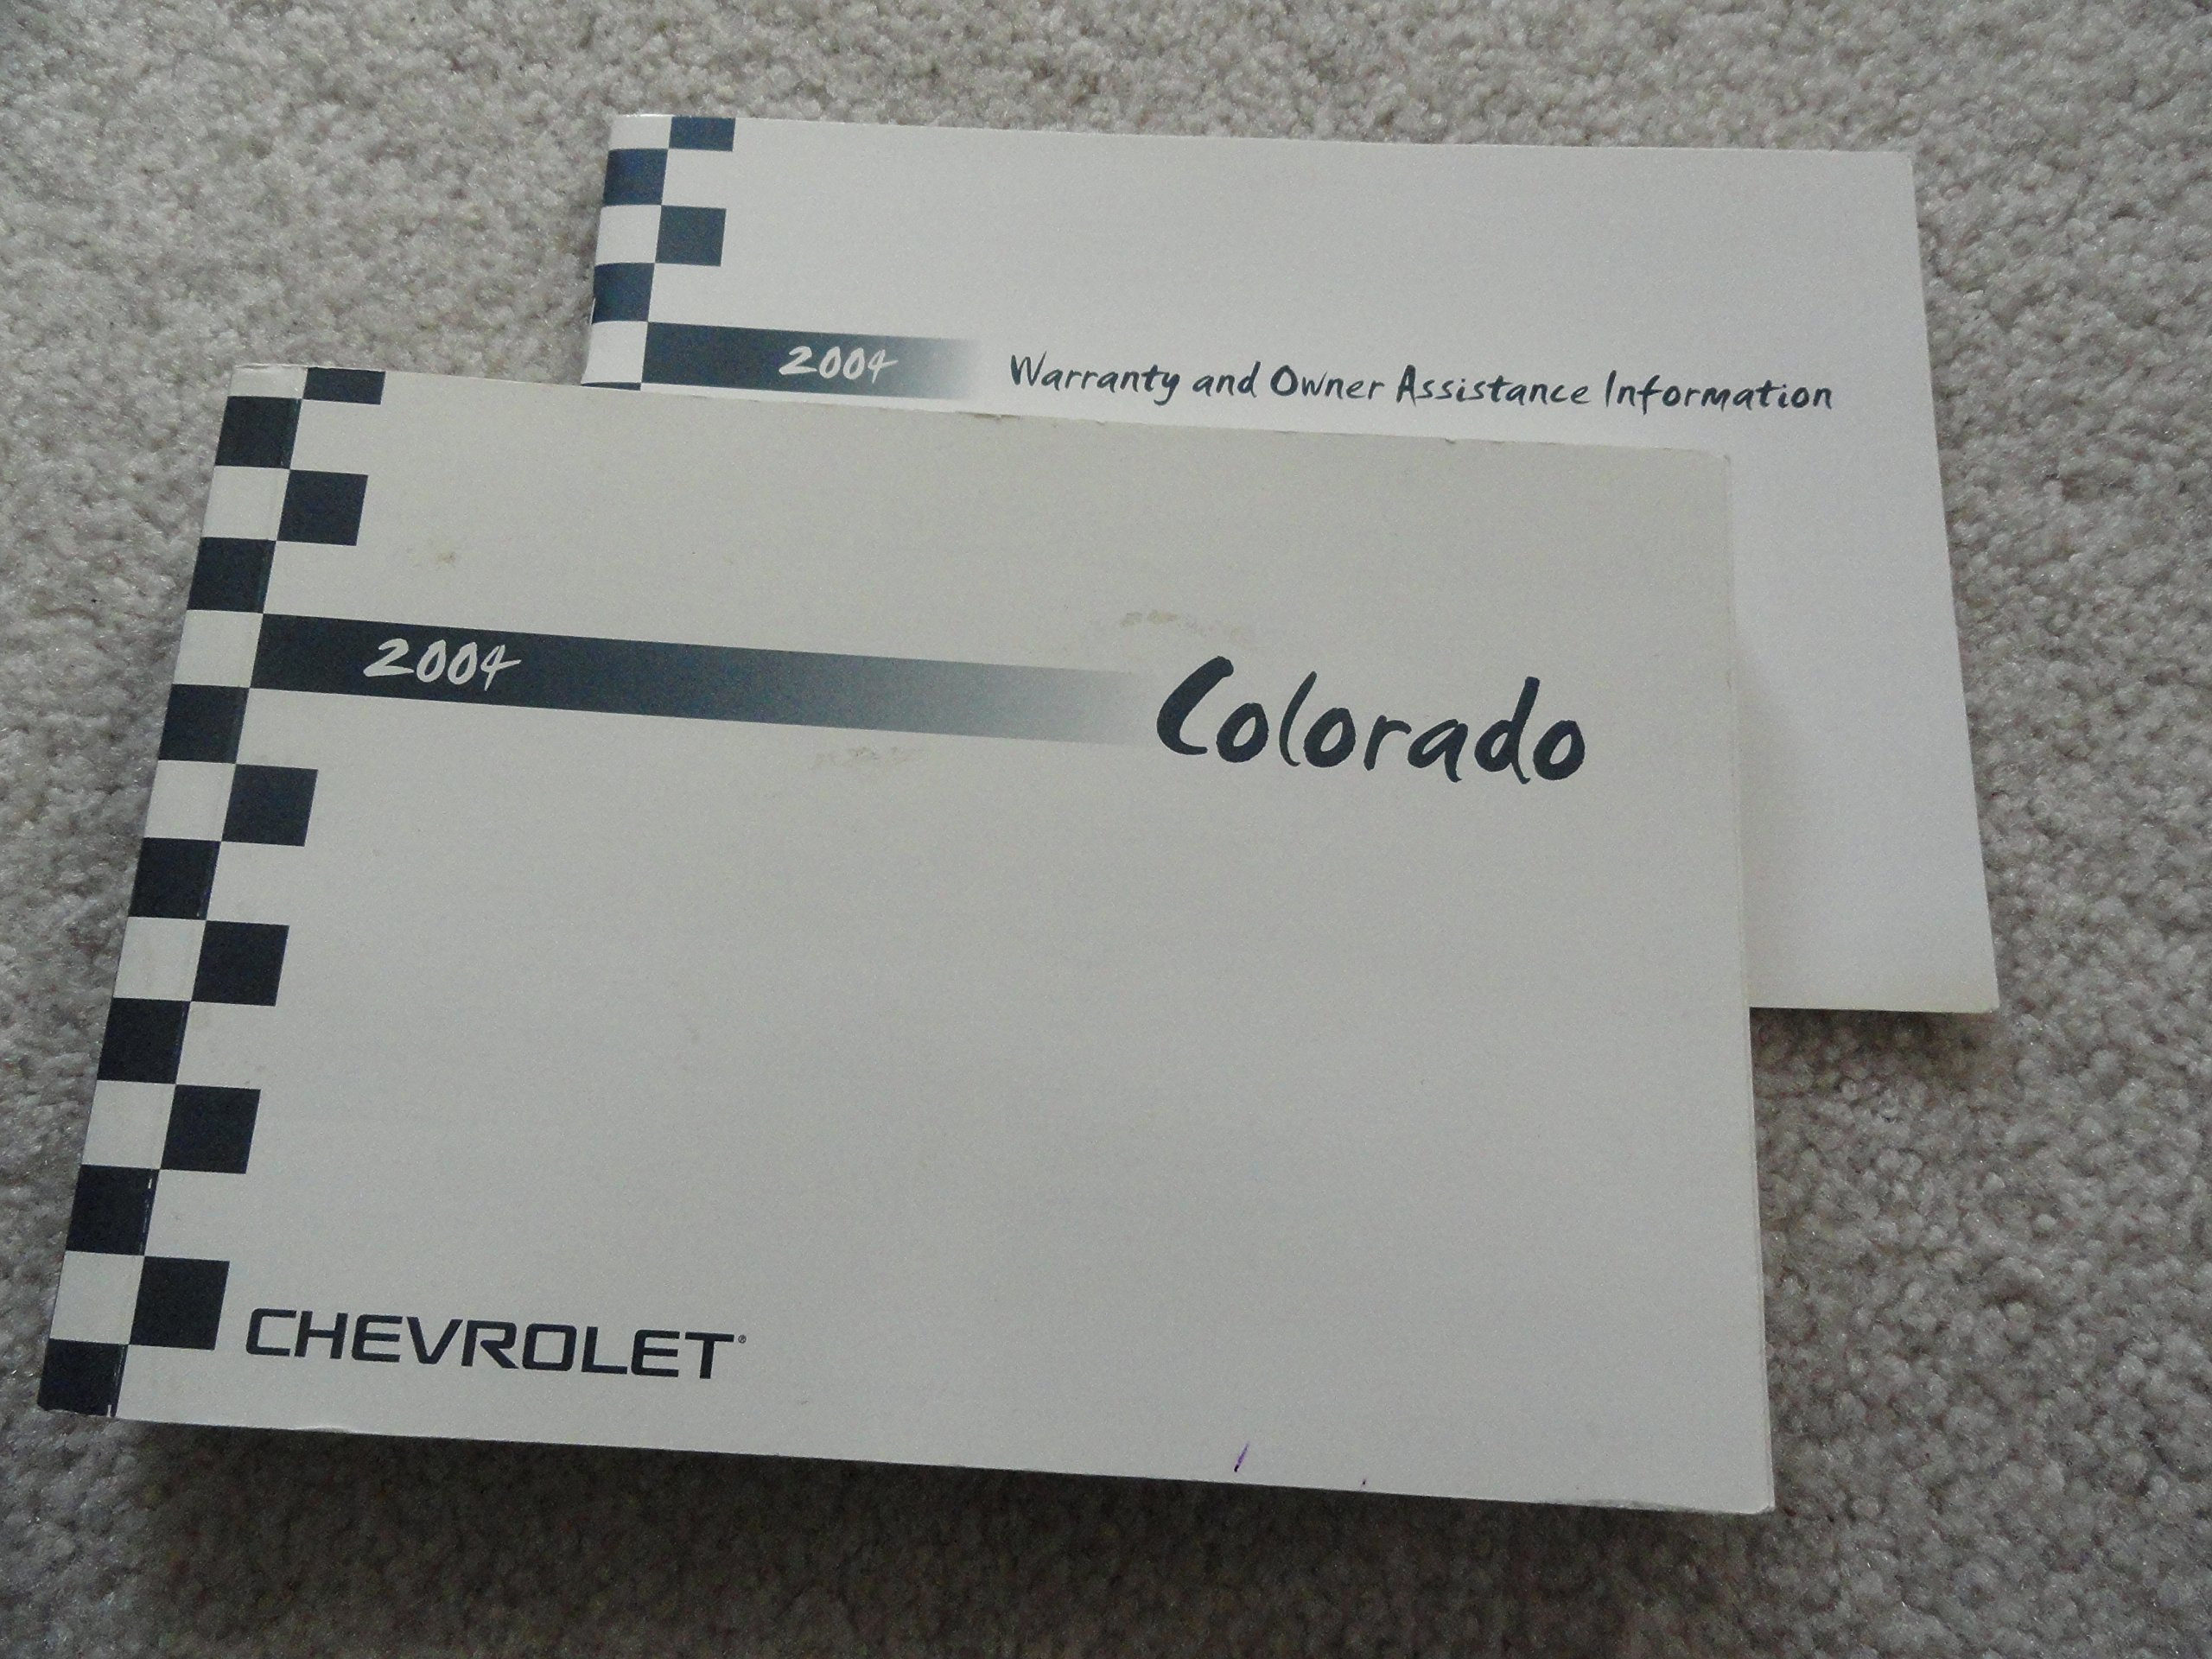 Cute Chevrolet Business Cards Gallery - Business Card Ideas ...